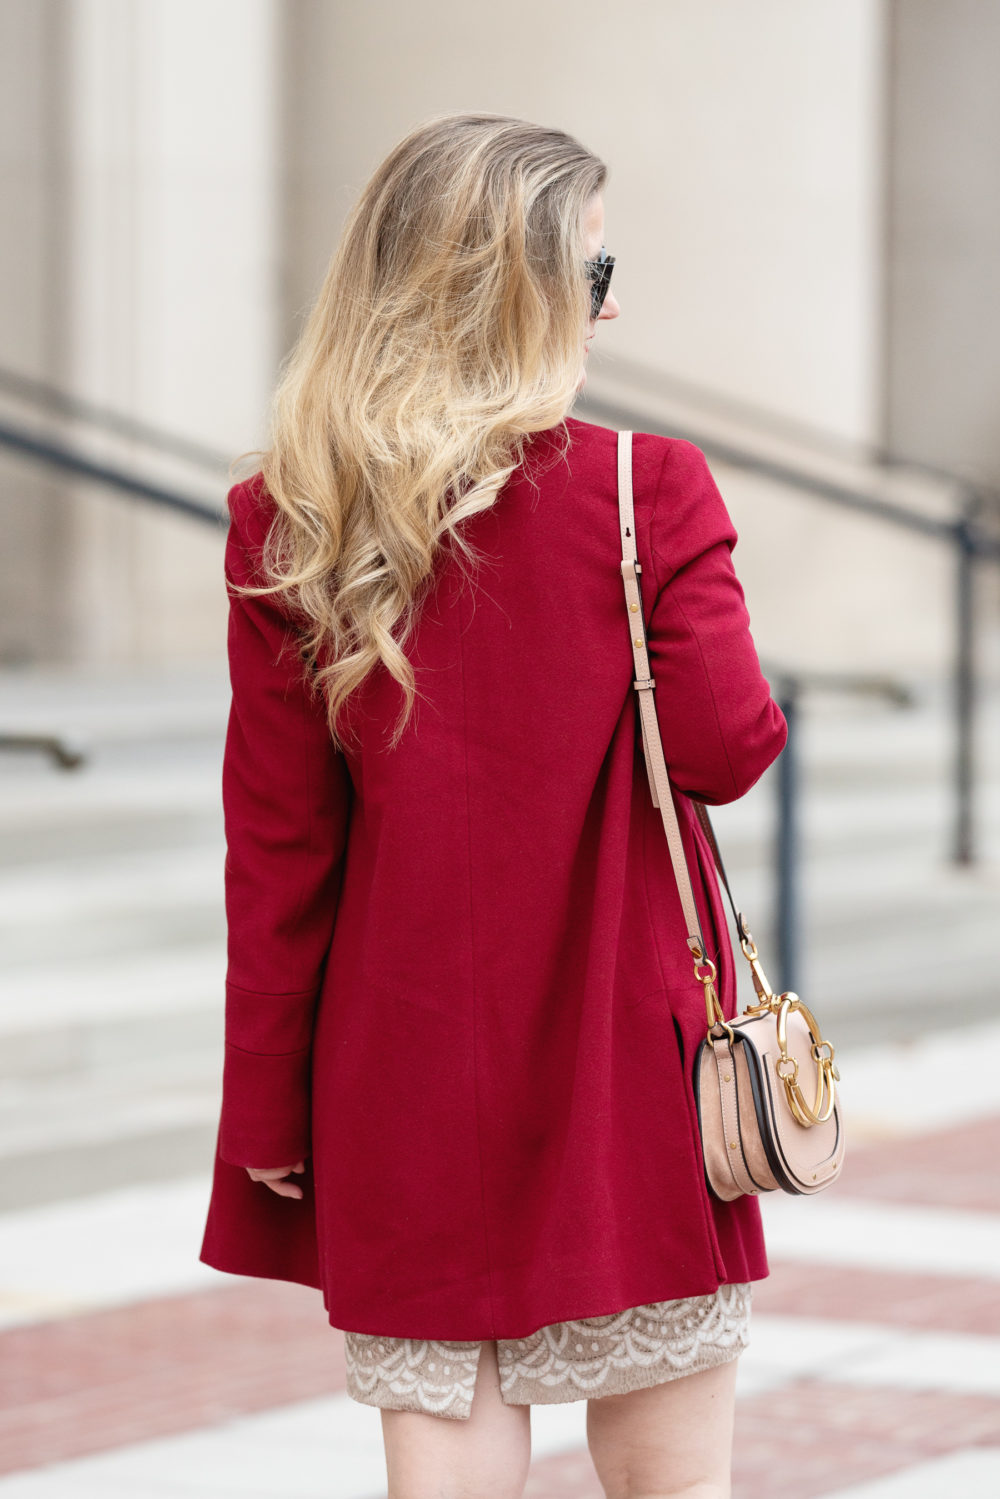 Petite Fashion and Style Blog | Nancy Pelosi Coat | Fleurette Red Coat | Eliza J Lace Dress